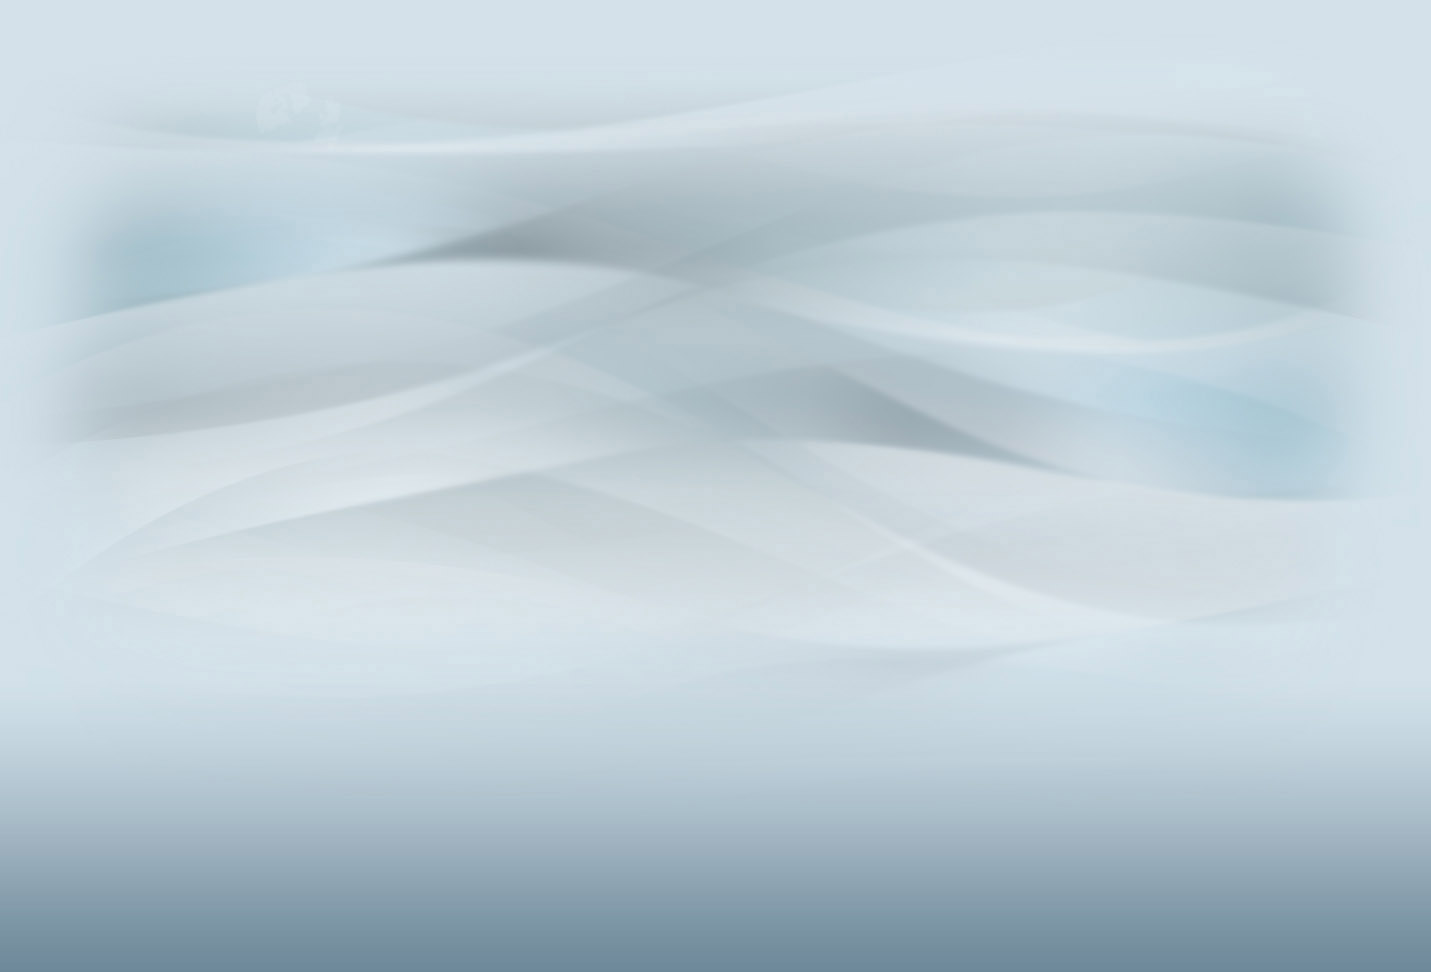 Free Download Professional Background Images Widescreen Hd